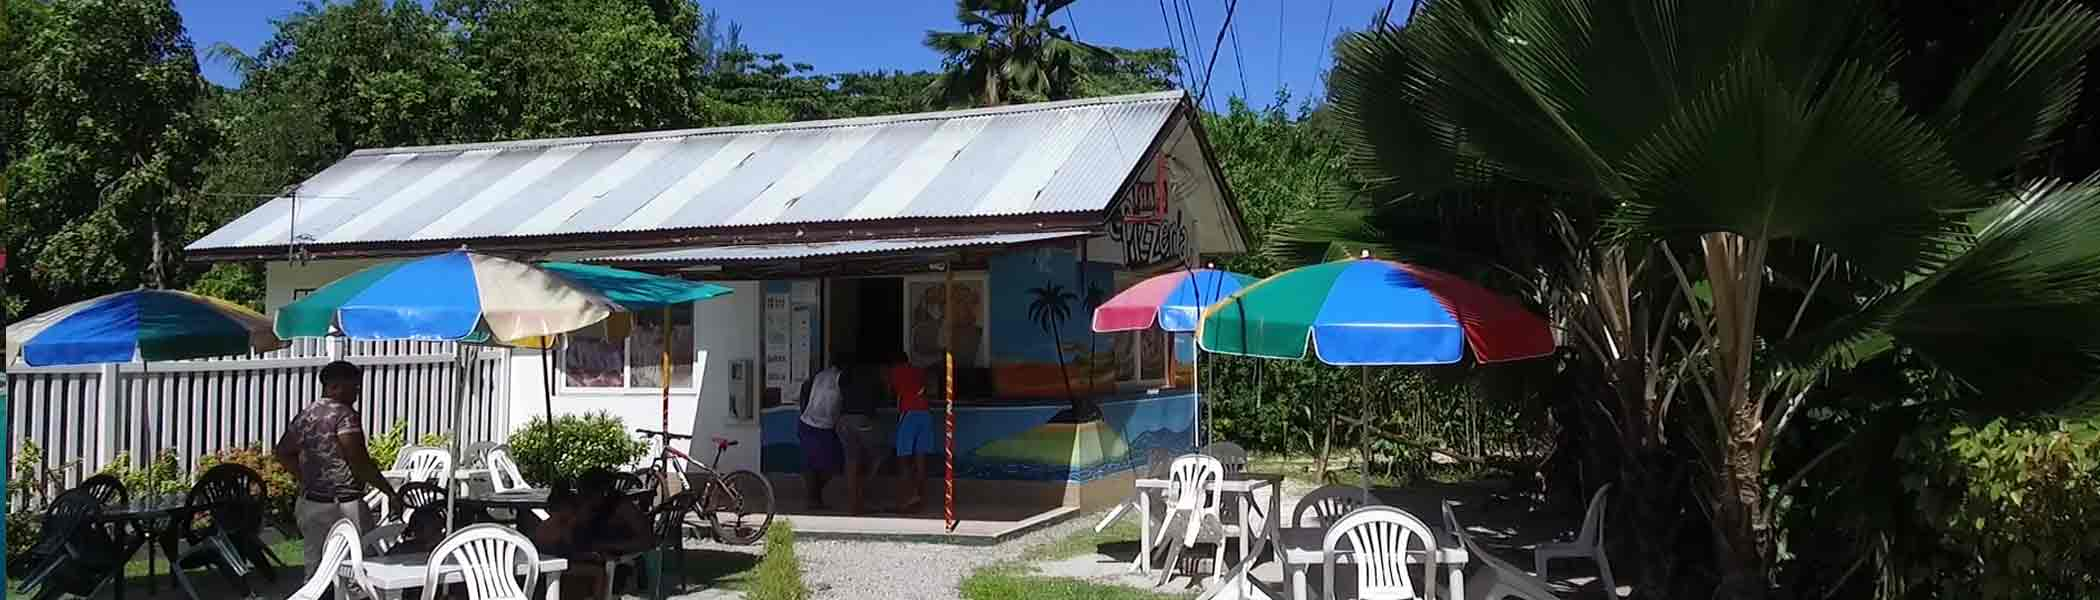 island-pizzeria, Bars and restaurants in Seychelles Islands